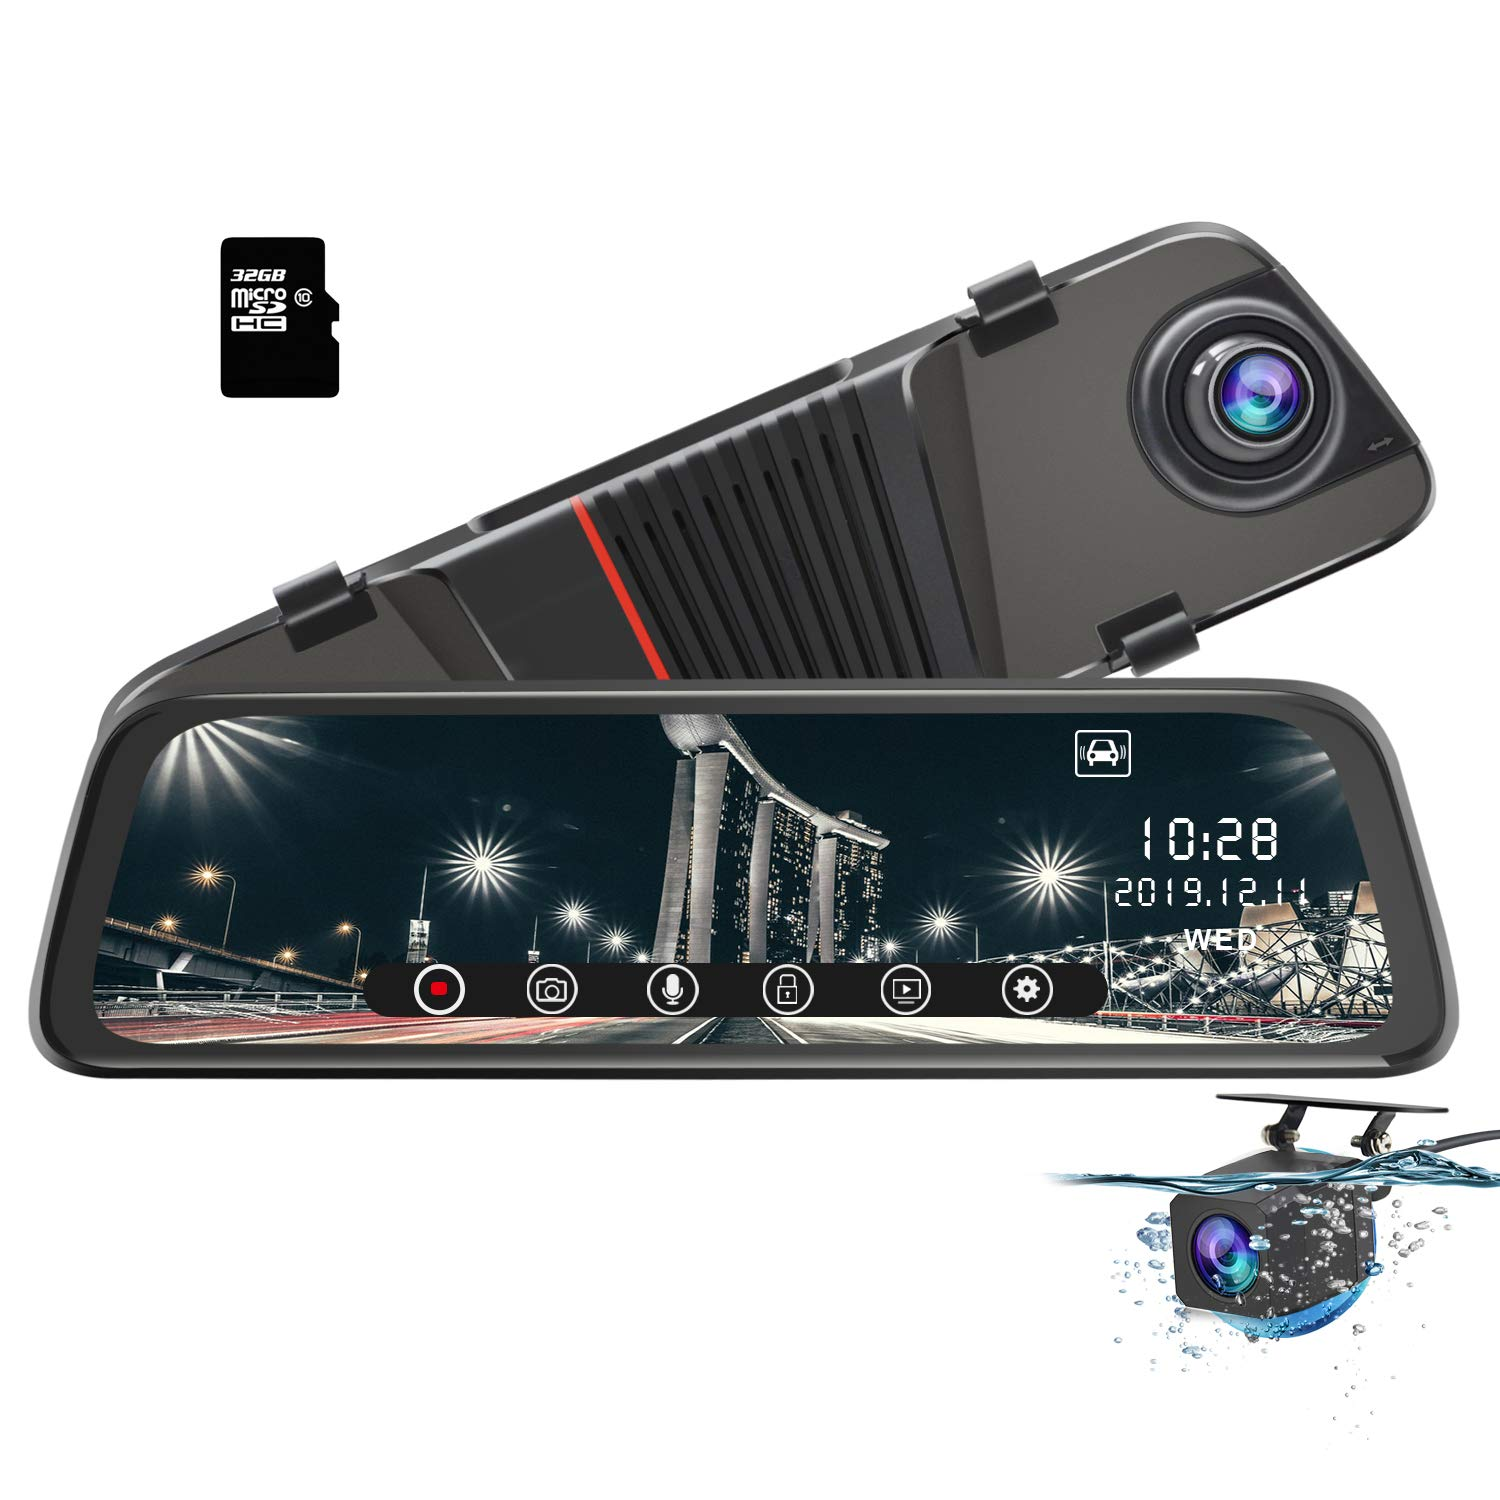 awesafe Mirror Dash Cam 10 inch Touch Full Screen Front 1080P Rear 1080P Dual Lesn 170° Wide Angle Rear View Camera 24-Hour Parking Monitoring (32GB Card Included)